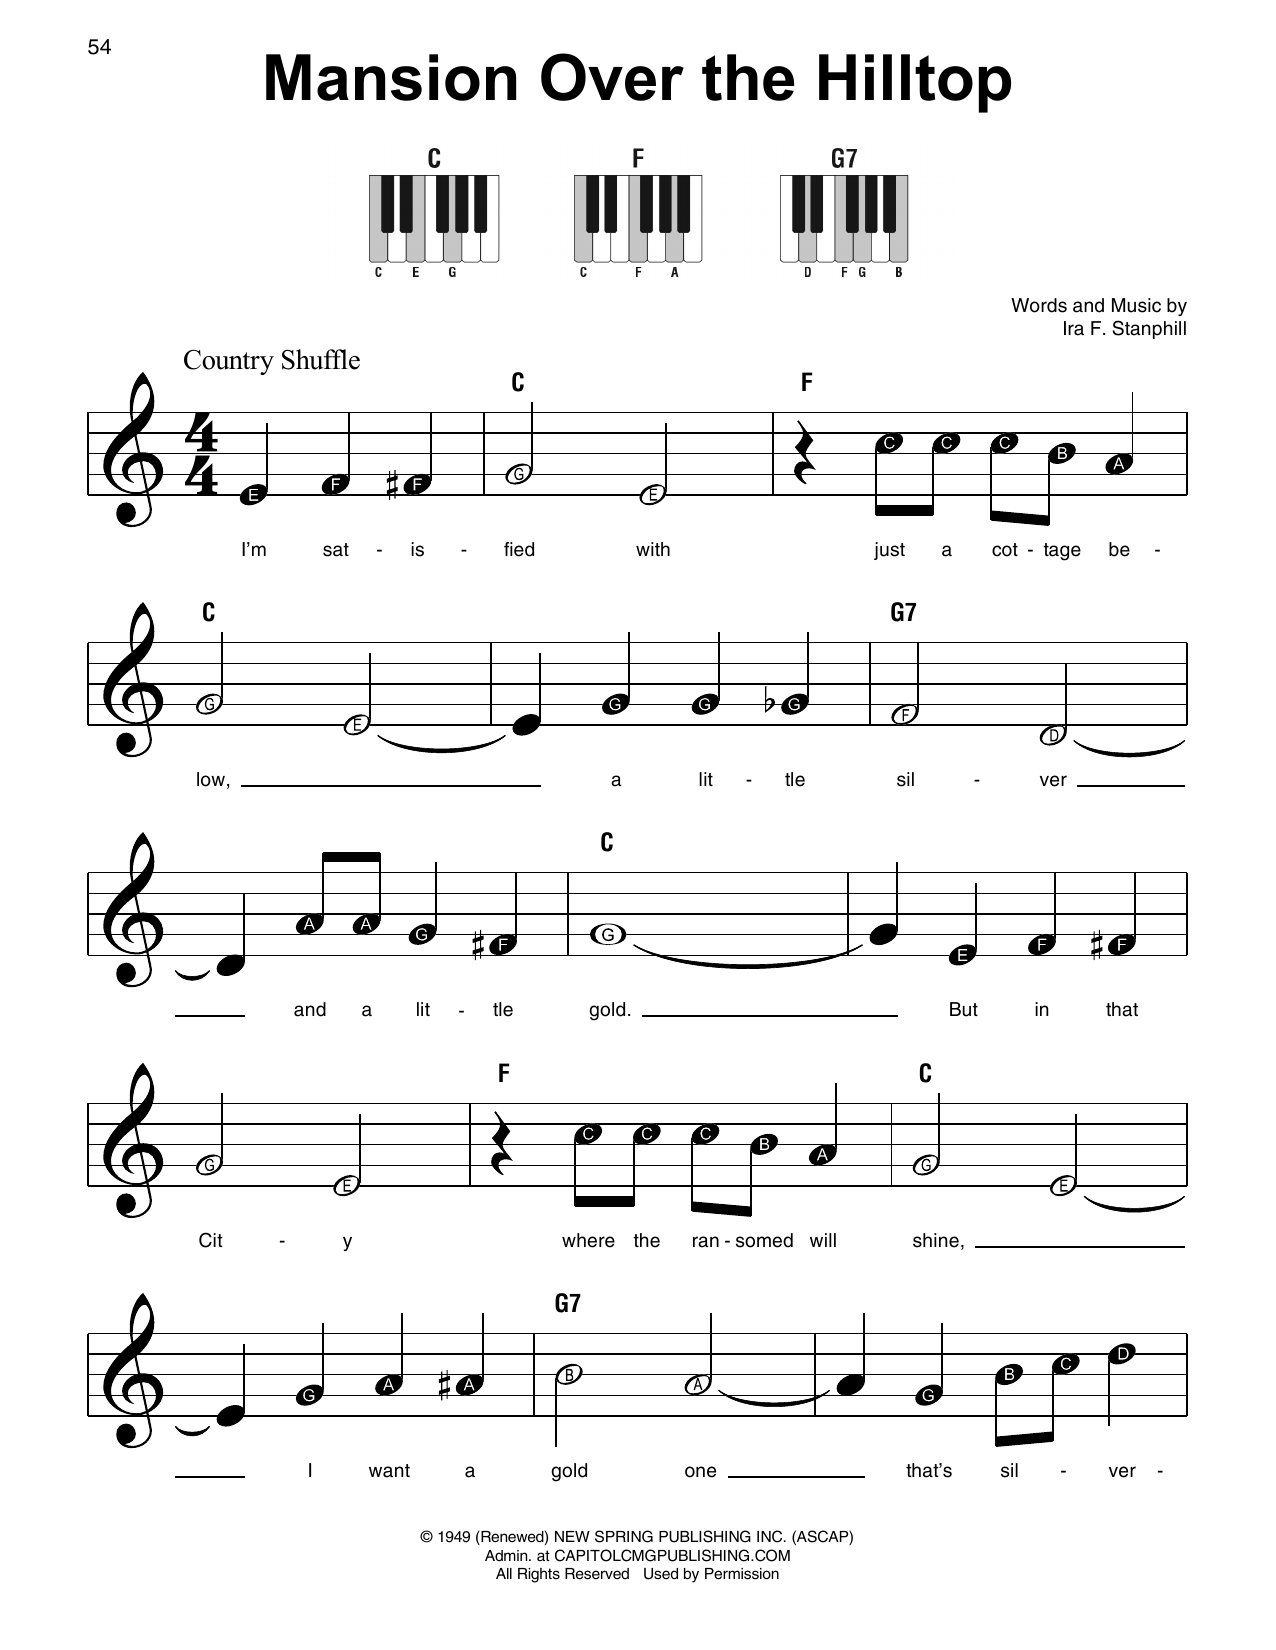 Ira F. Stanphill Mansion Over The Hilltop sheet music notes and chords. Download Printable PDF.